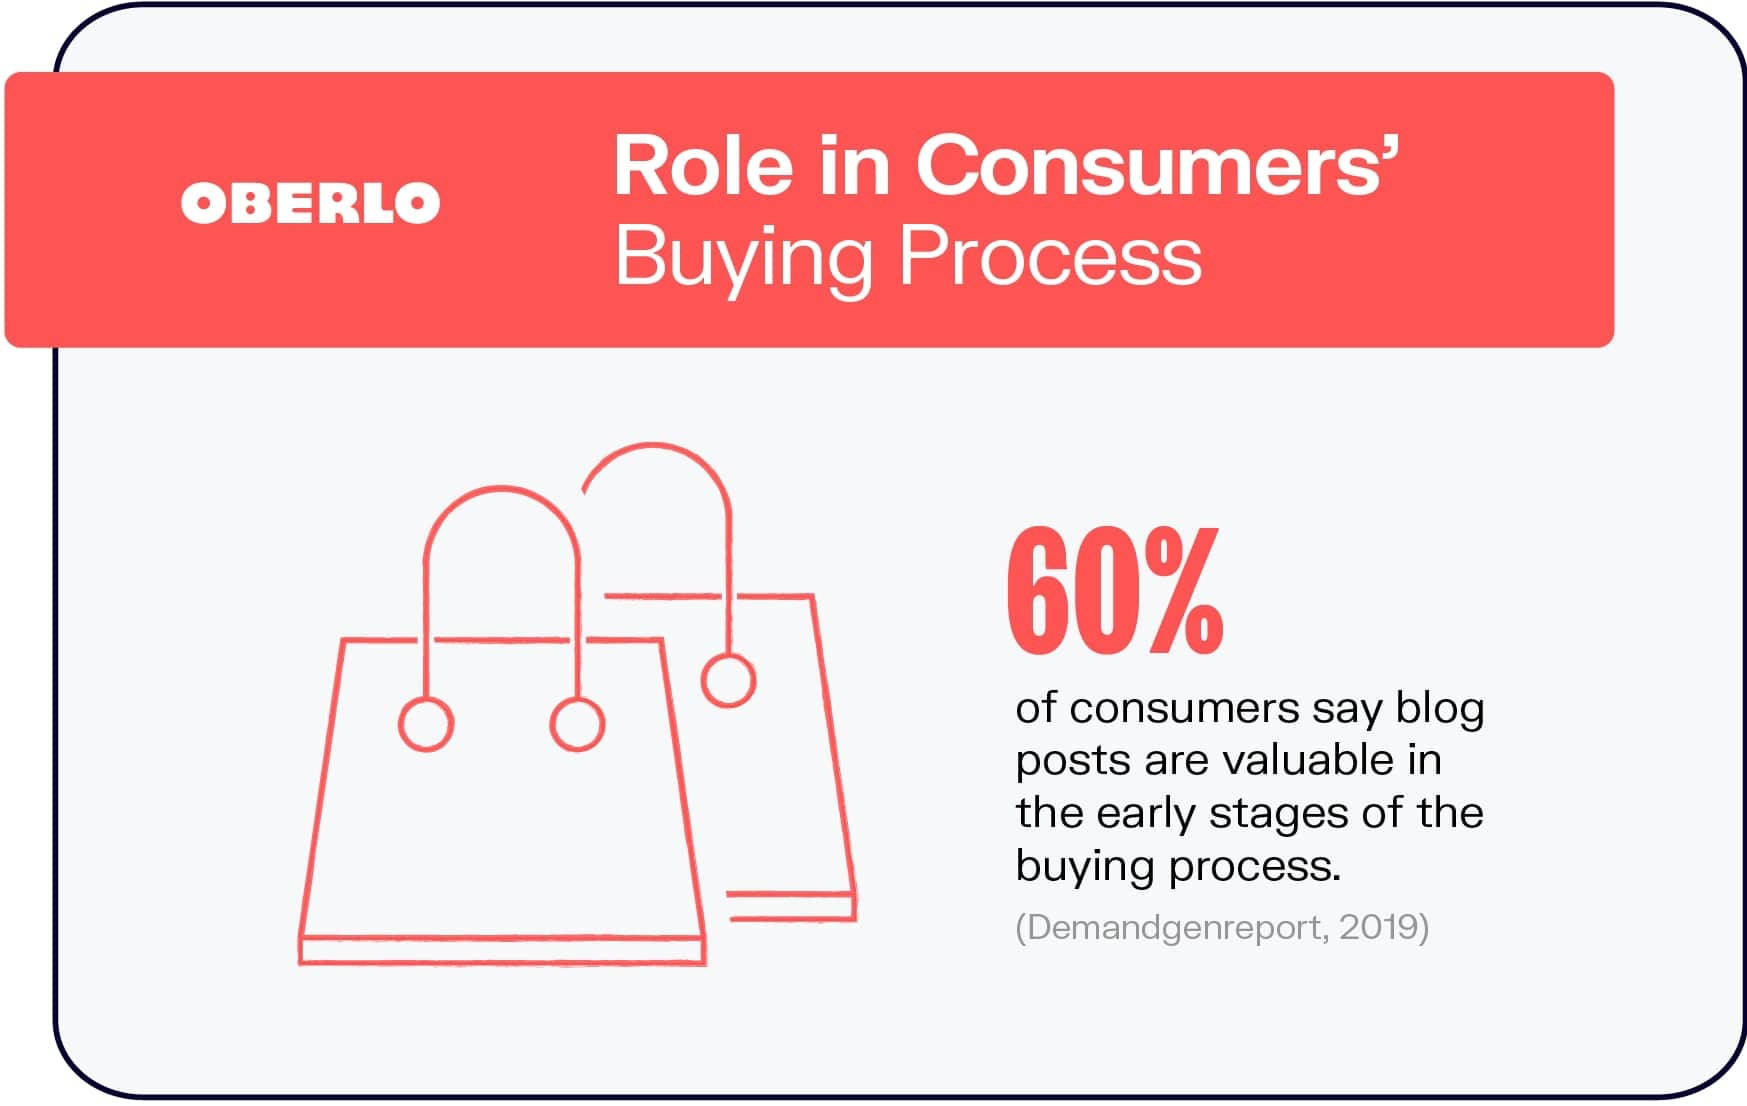 Role in Consumers' Buying Process